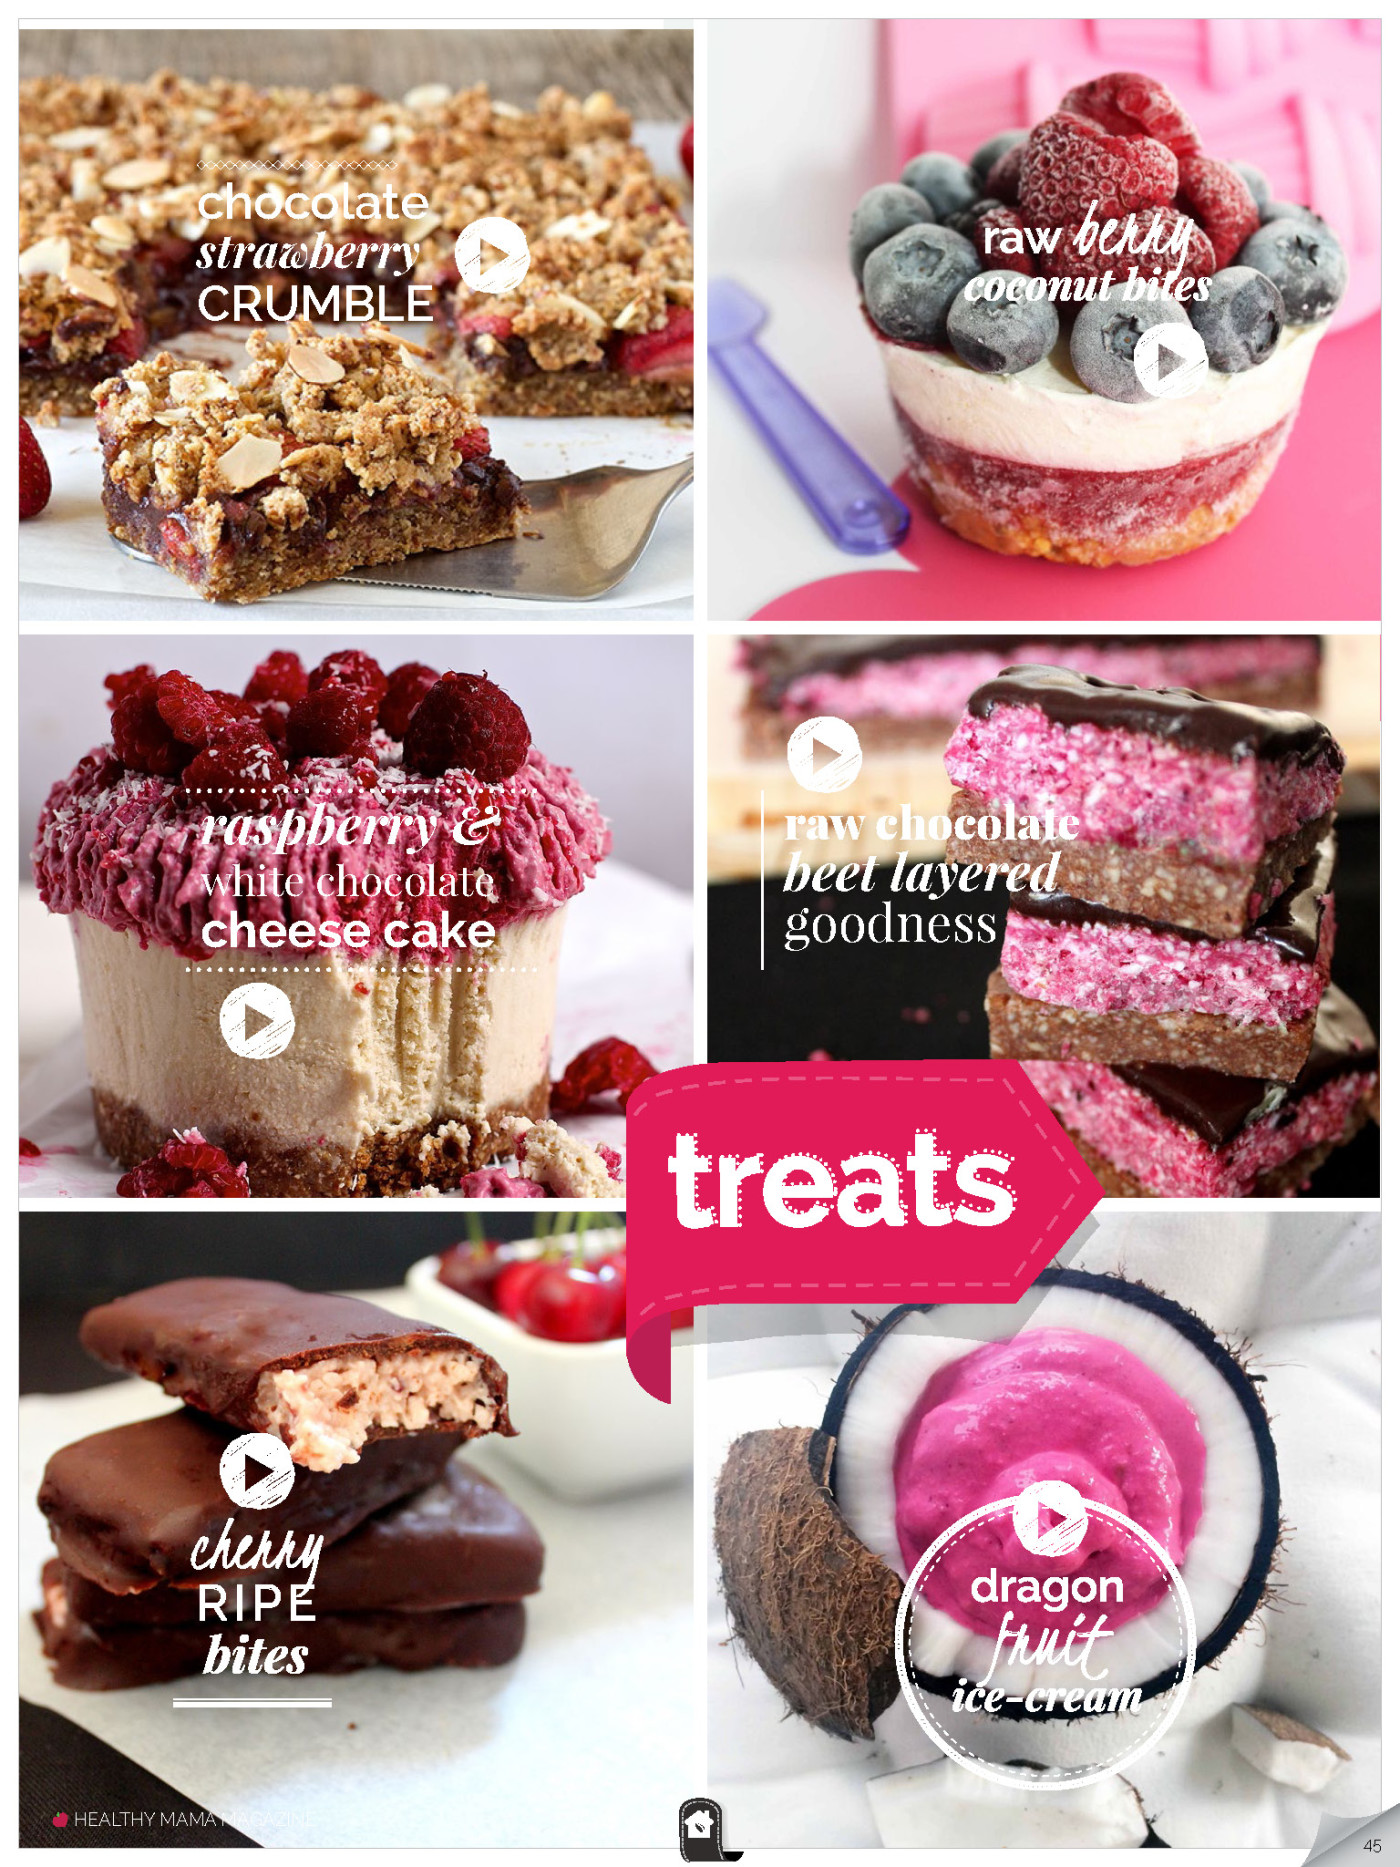 Treats for Red Edition February 2015